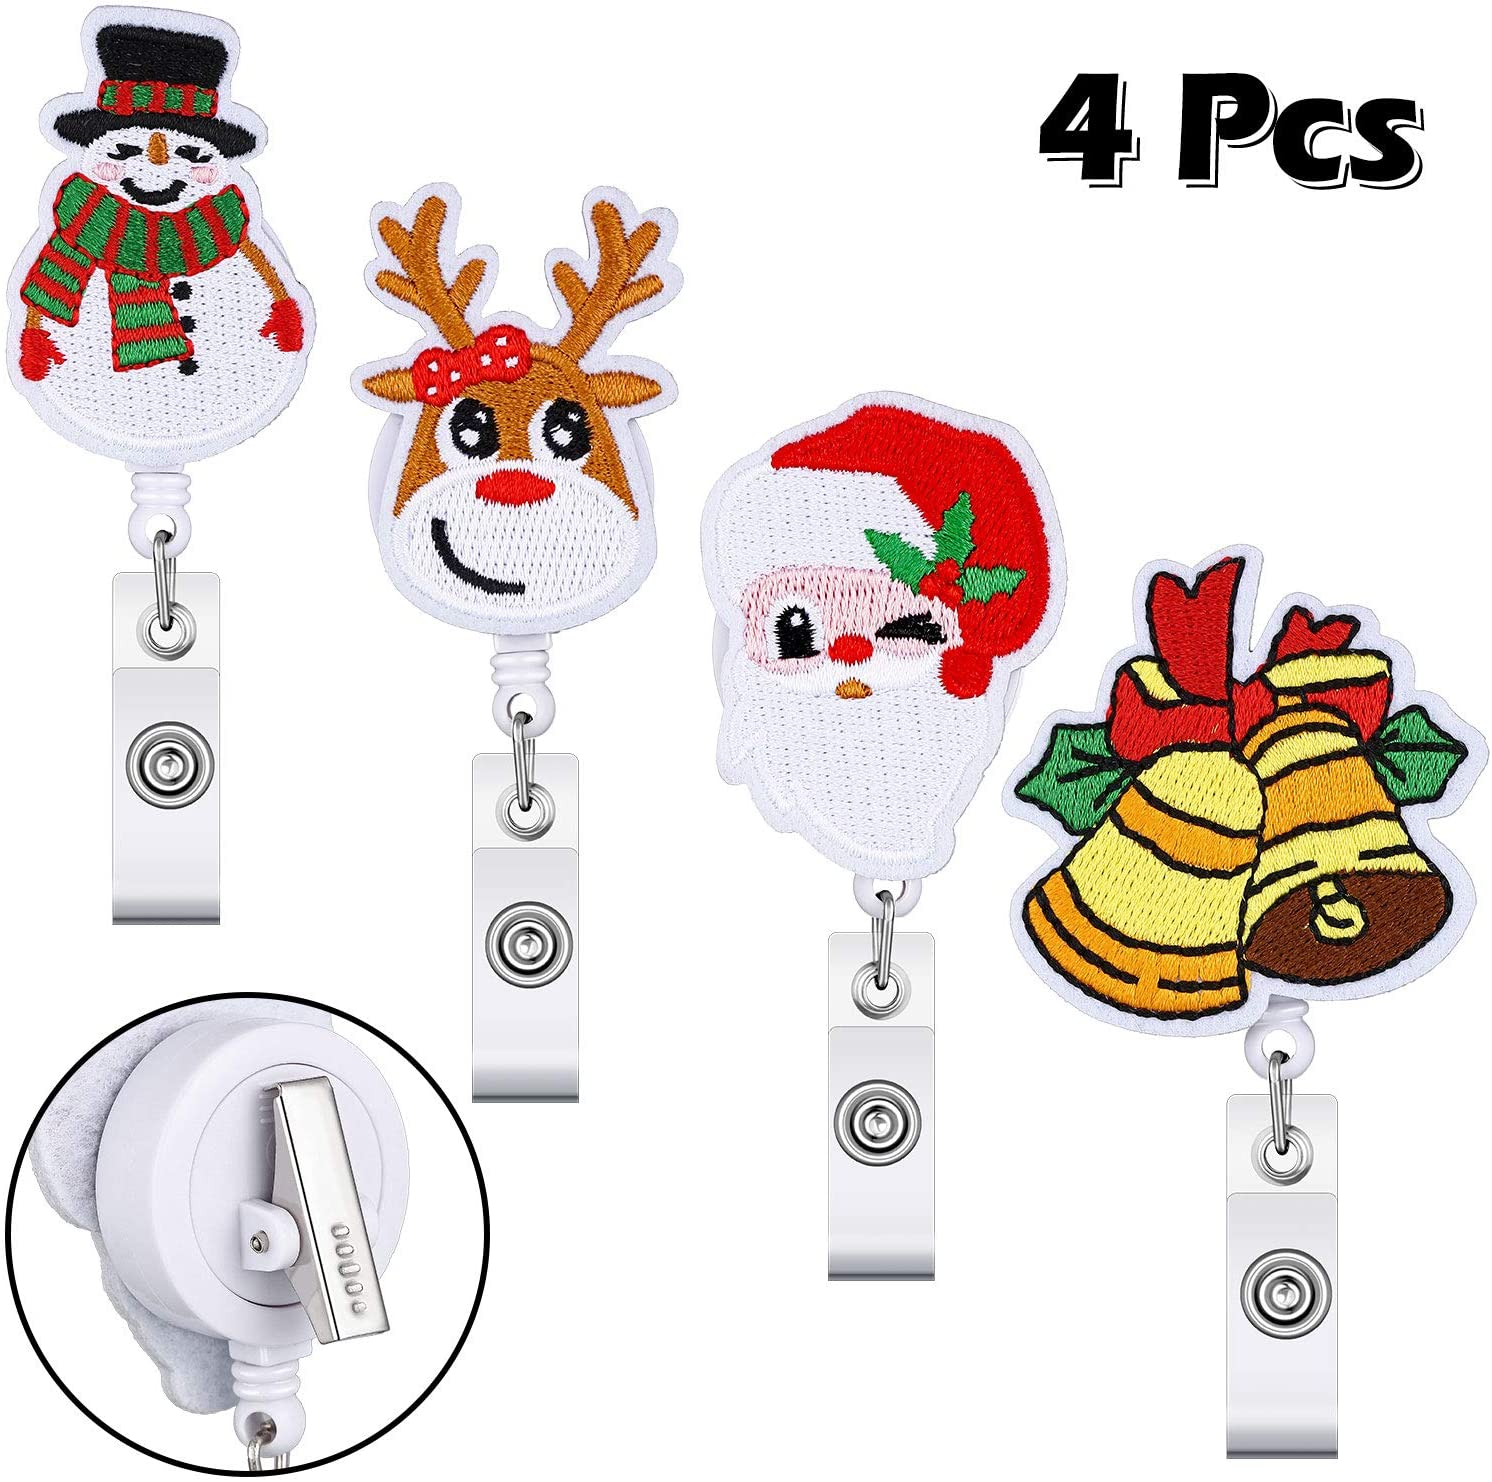 4 Pieces Christmas Badge Reel Set Santa Claus Snowman Reindeer Christmas Bell Retractable Badge Holder Name Decorative Badge Reel Clip with Alligator Clip on ID Card Holders